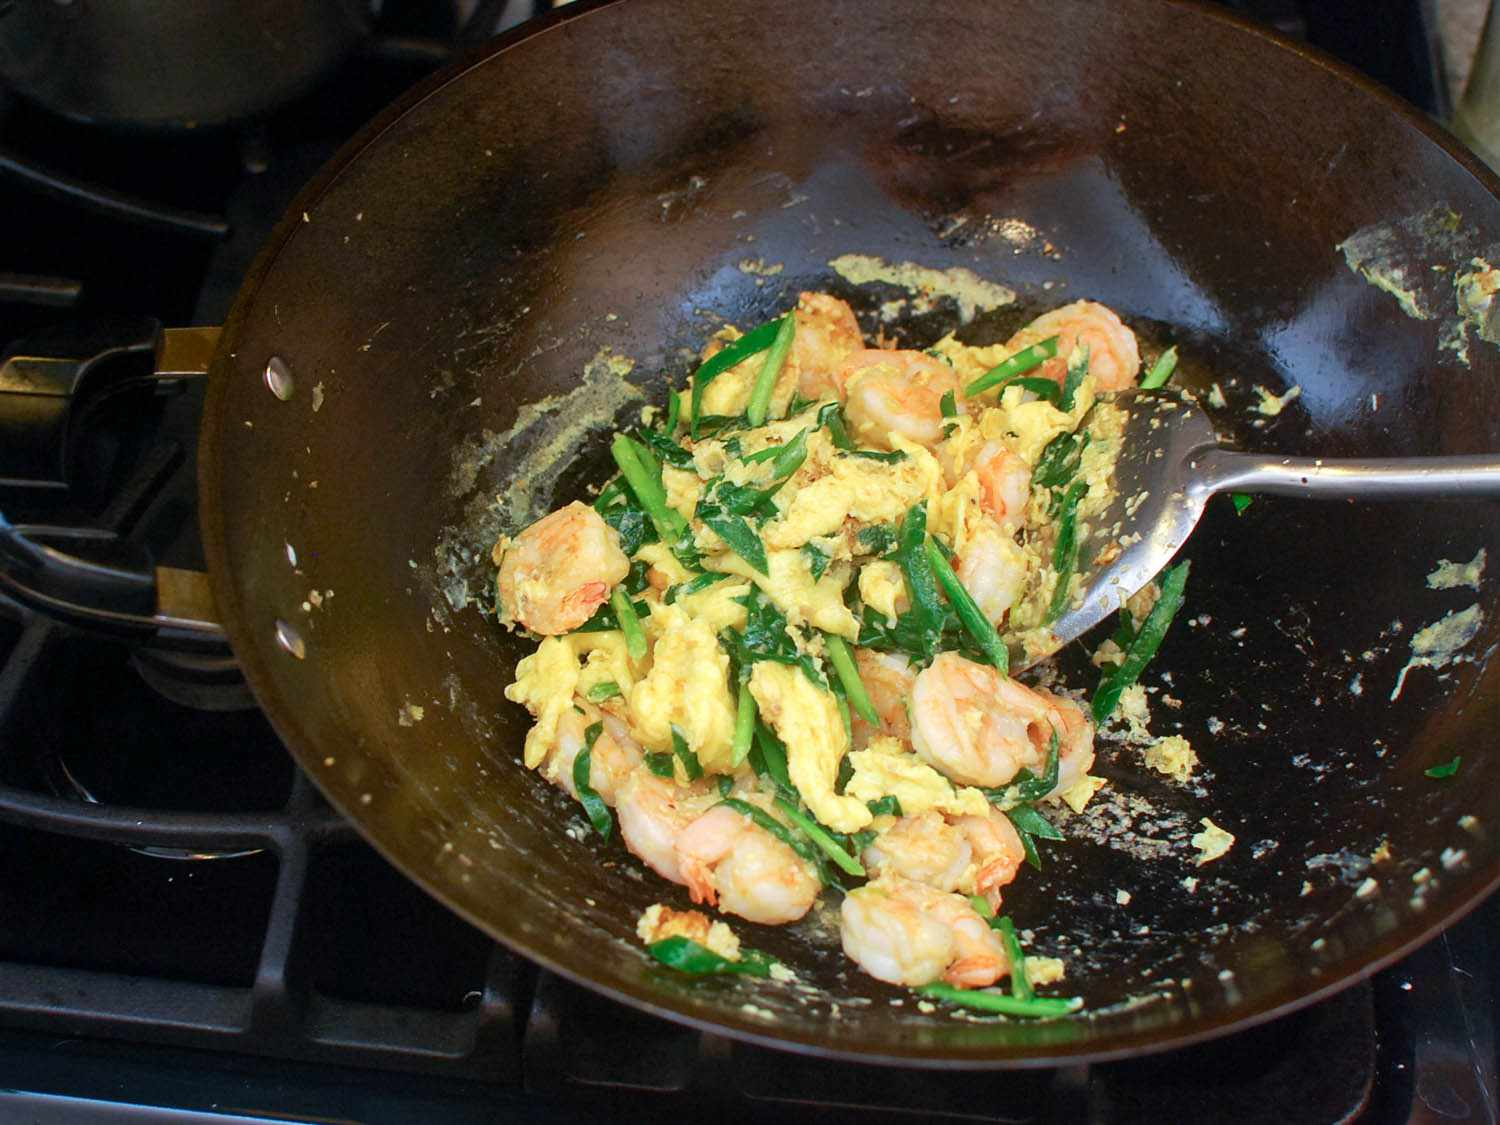 20140617-stir-fry-shrimp-egg-and-chinese-chives-shao-zhong-10.jpg